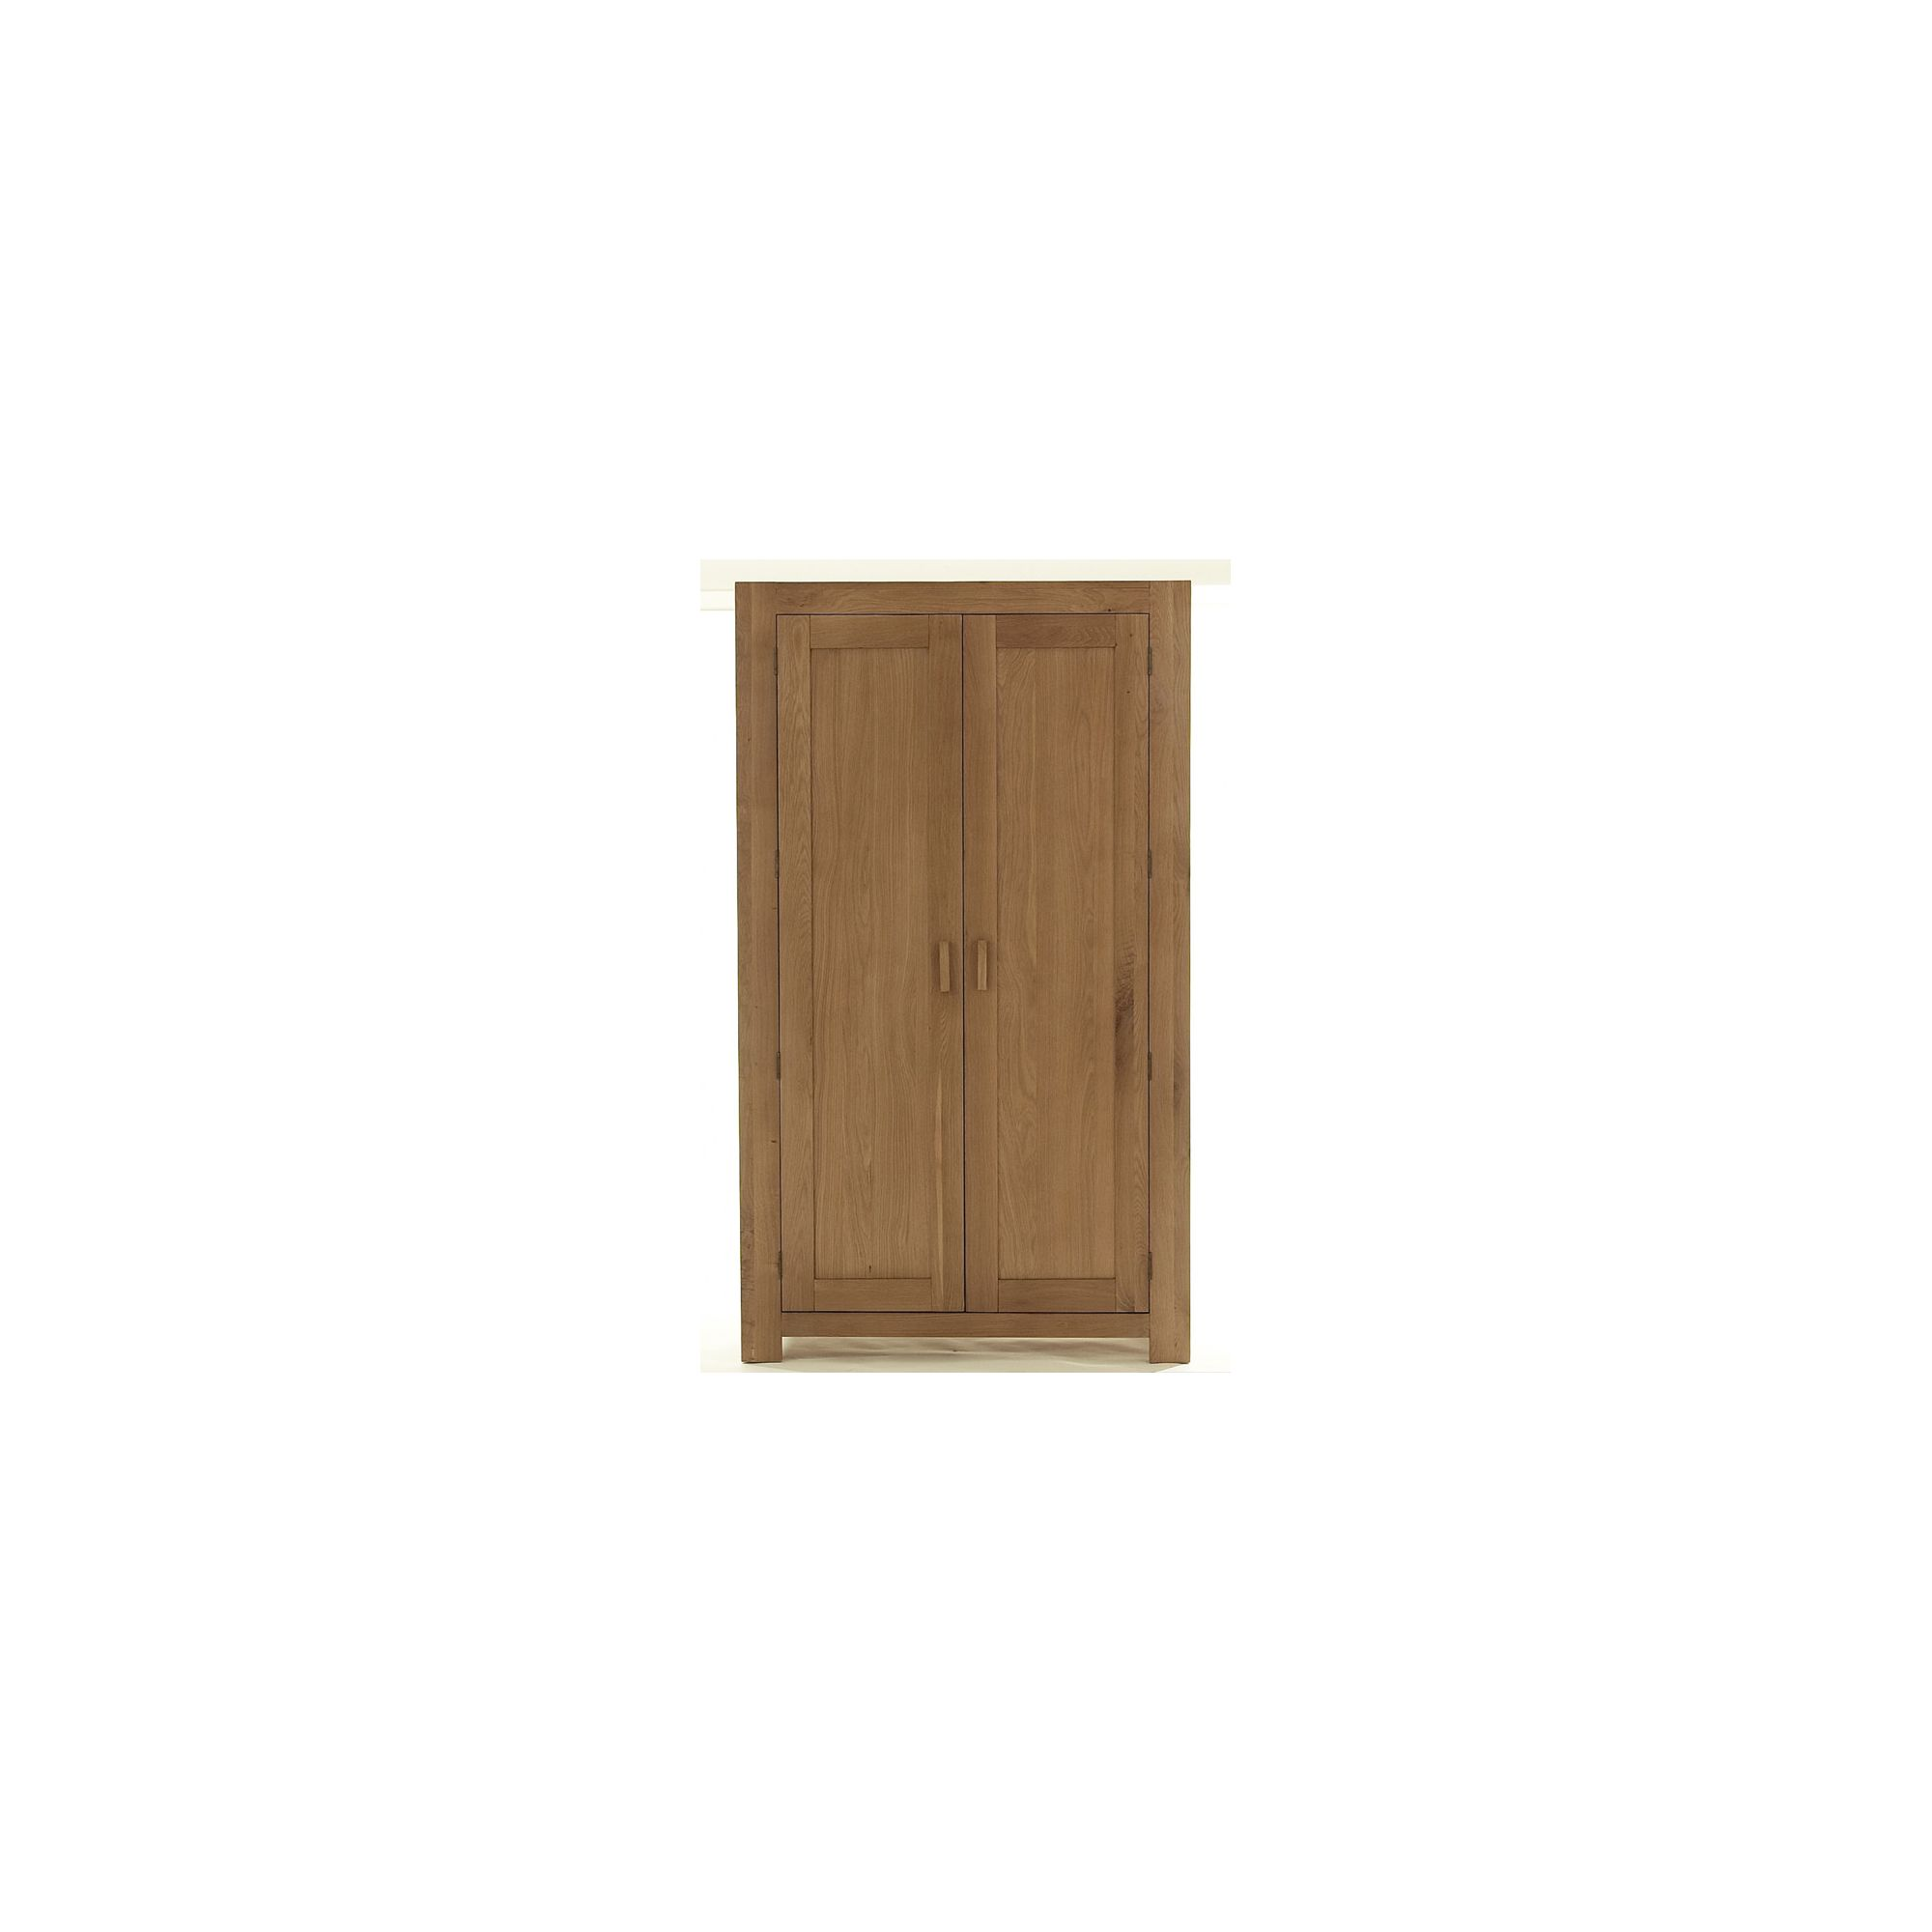 Thorndon Block Bedroom Gents Double Wardrobe in Natural Matured Oak at Tesco Direct